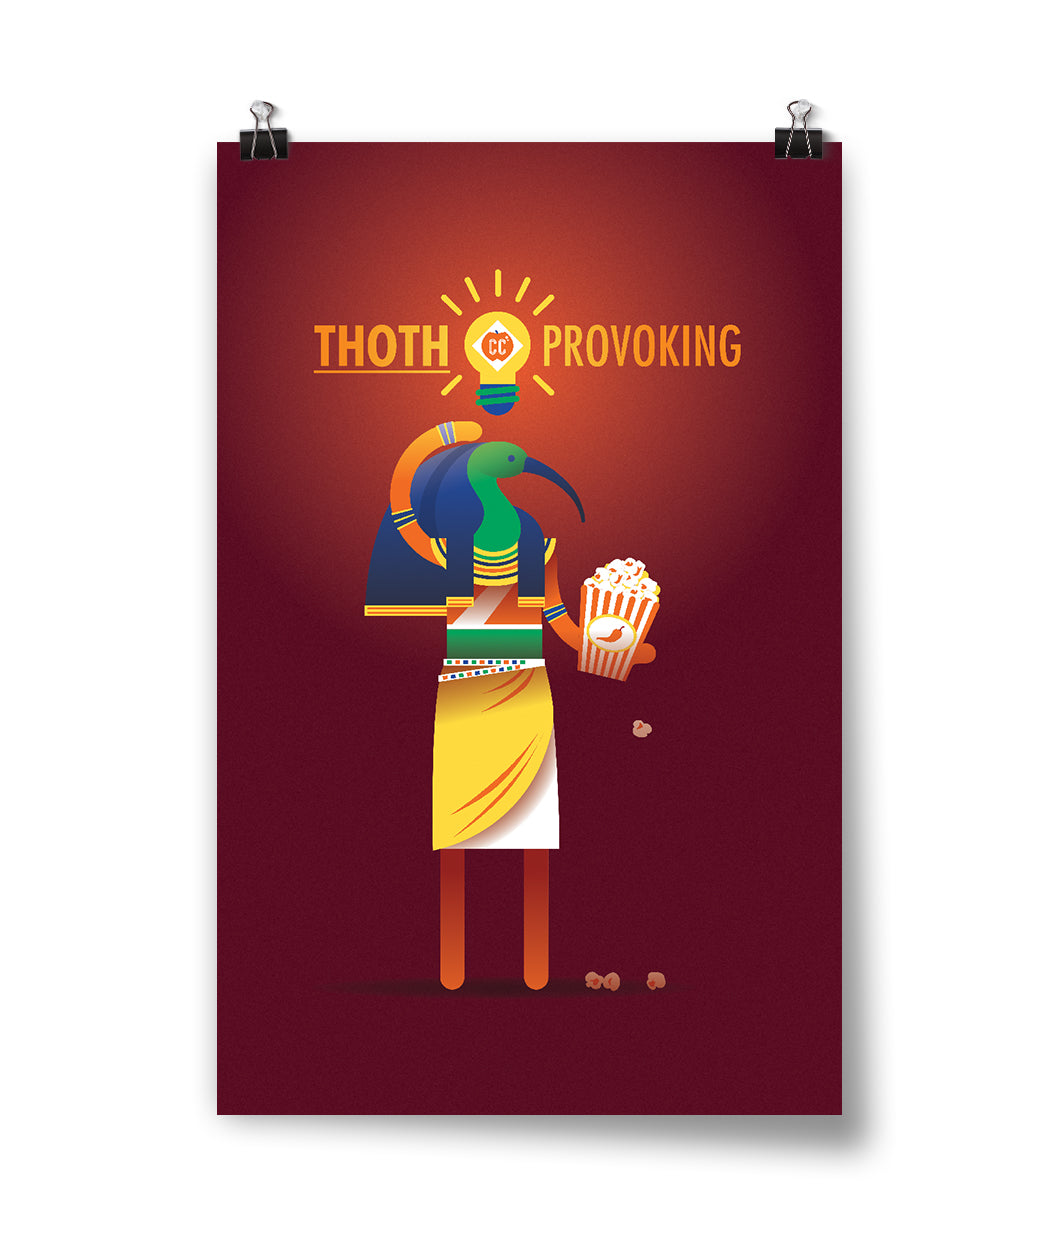 Thoth Provoking Poster